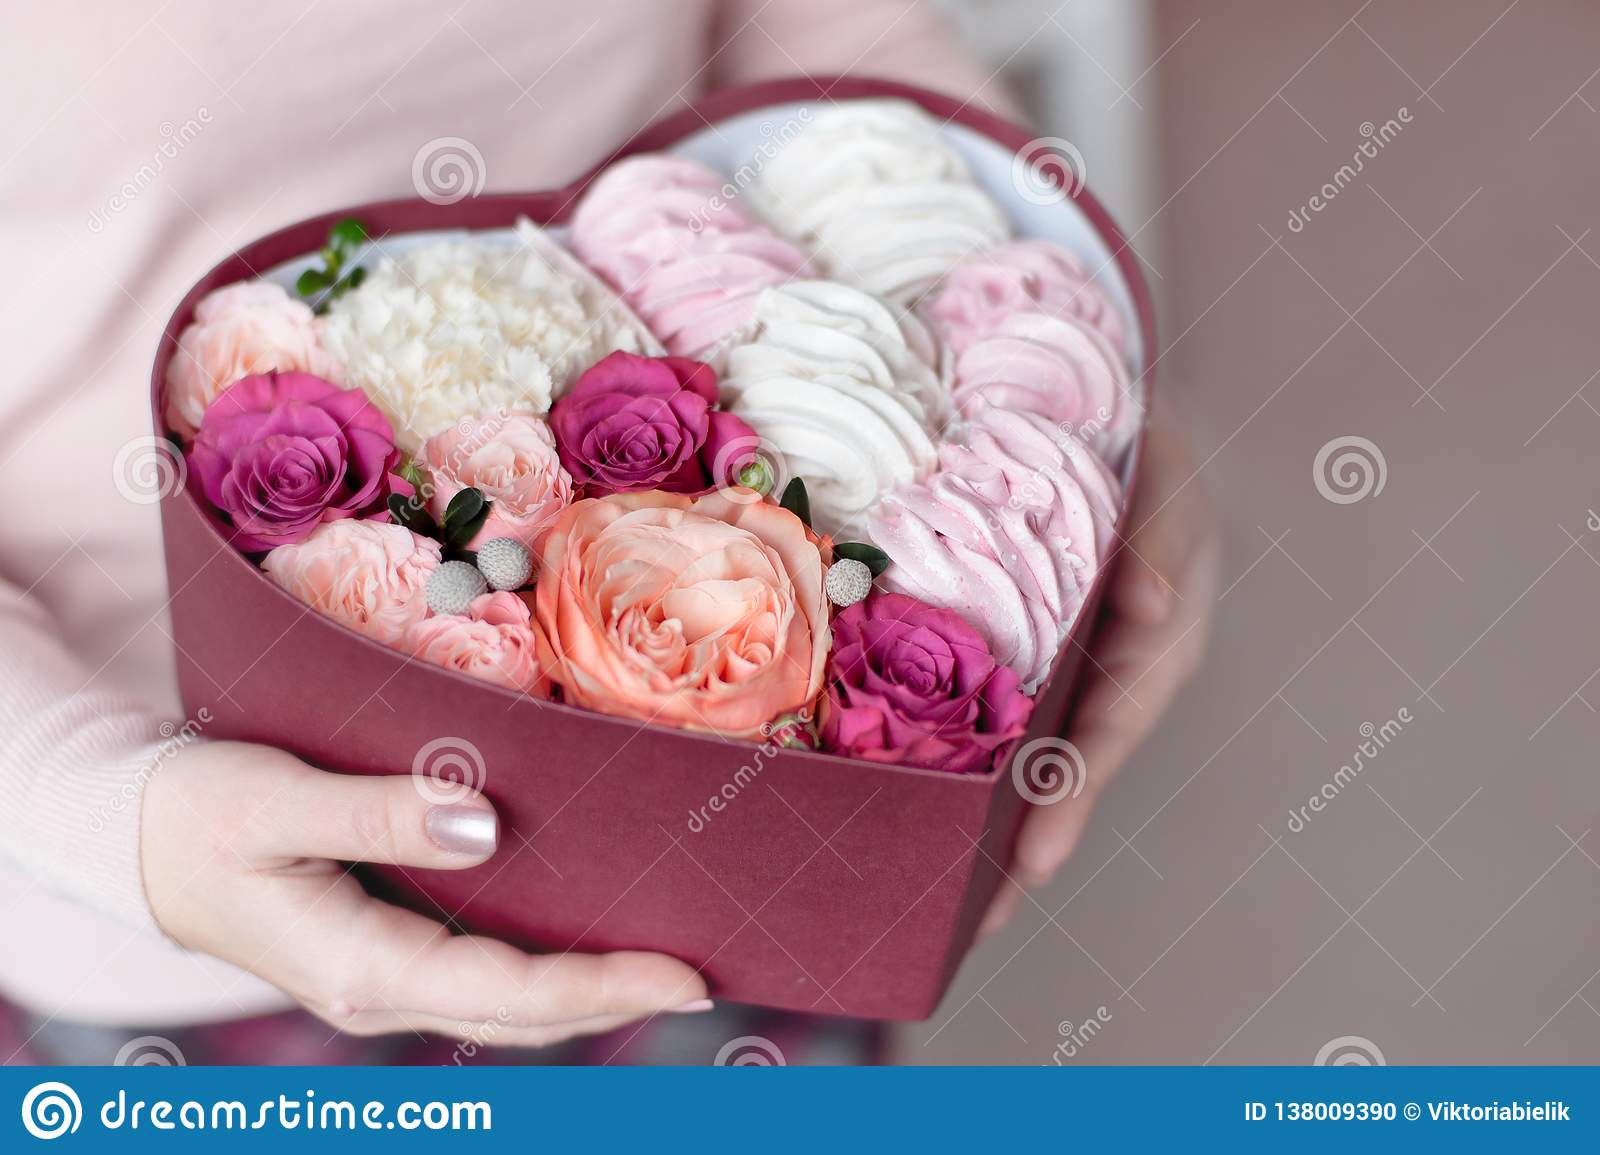 A Bouquet Of Flowers And Marshmallows In A Gift Box Of Heart In Female Hands Congratulatory Concept Sale Stock Photo Image Of Food Celebration 138009390